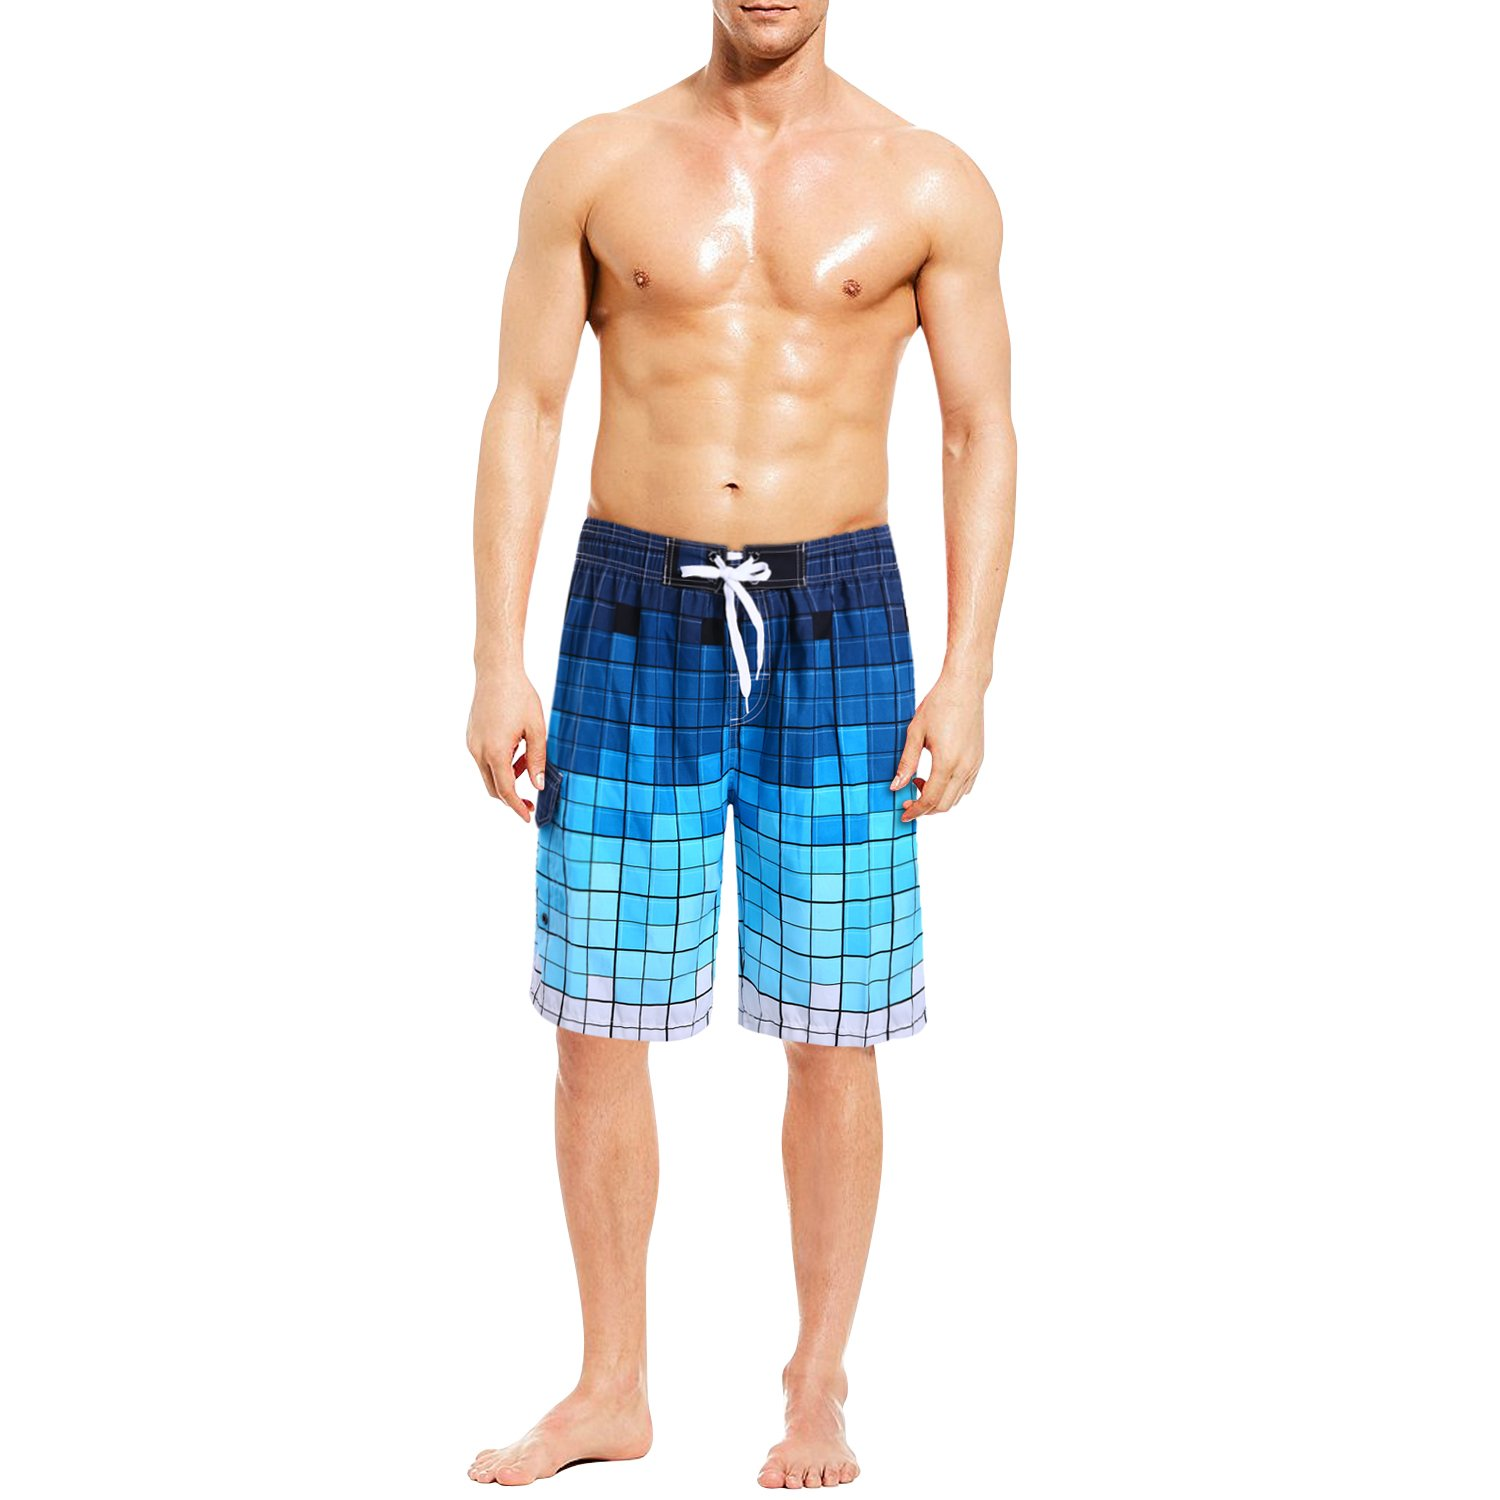 MIGOHI Men's Swim Trunks Summer Outdoor Swimsuit Quick Dry with Mesh Lining